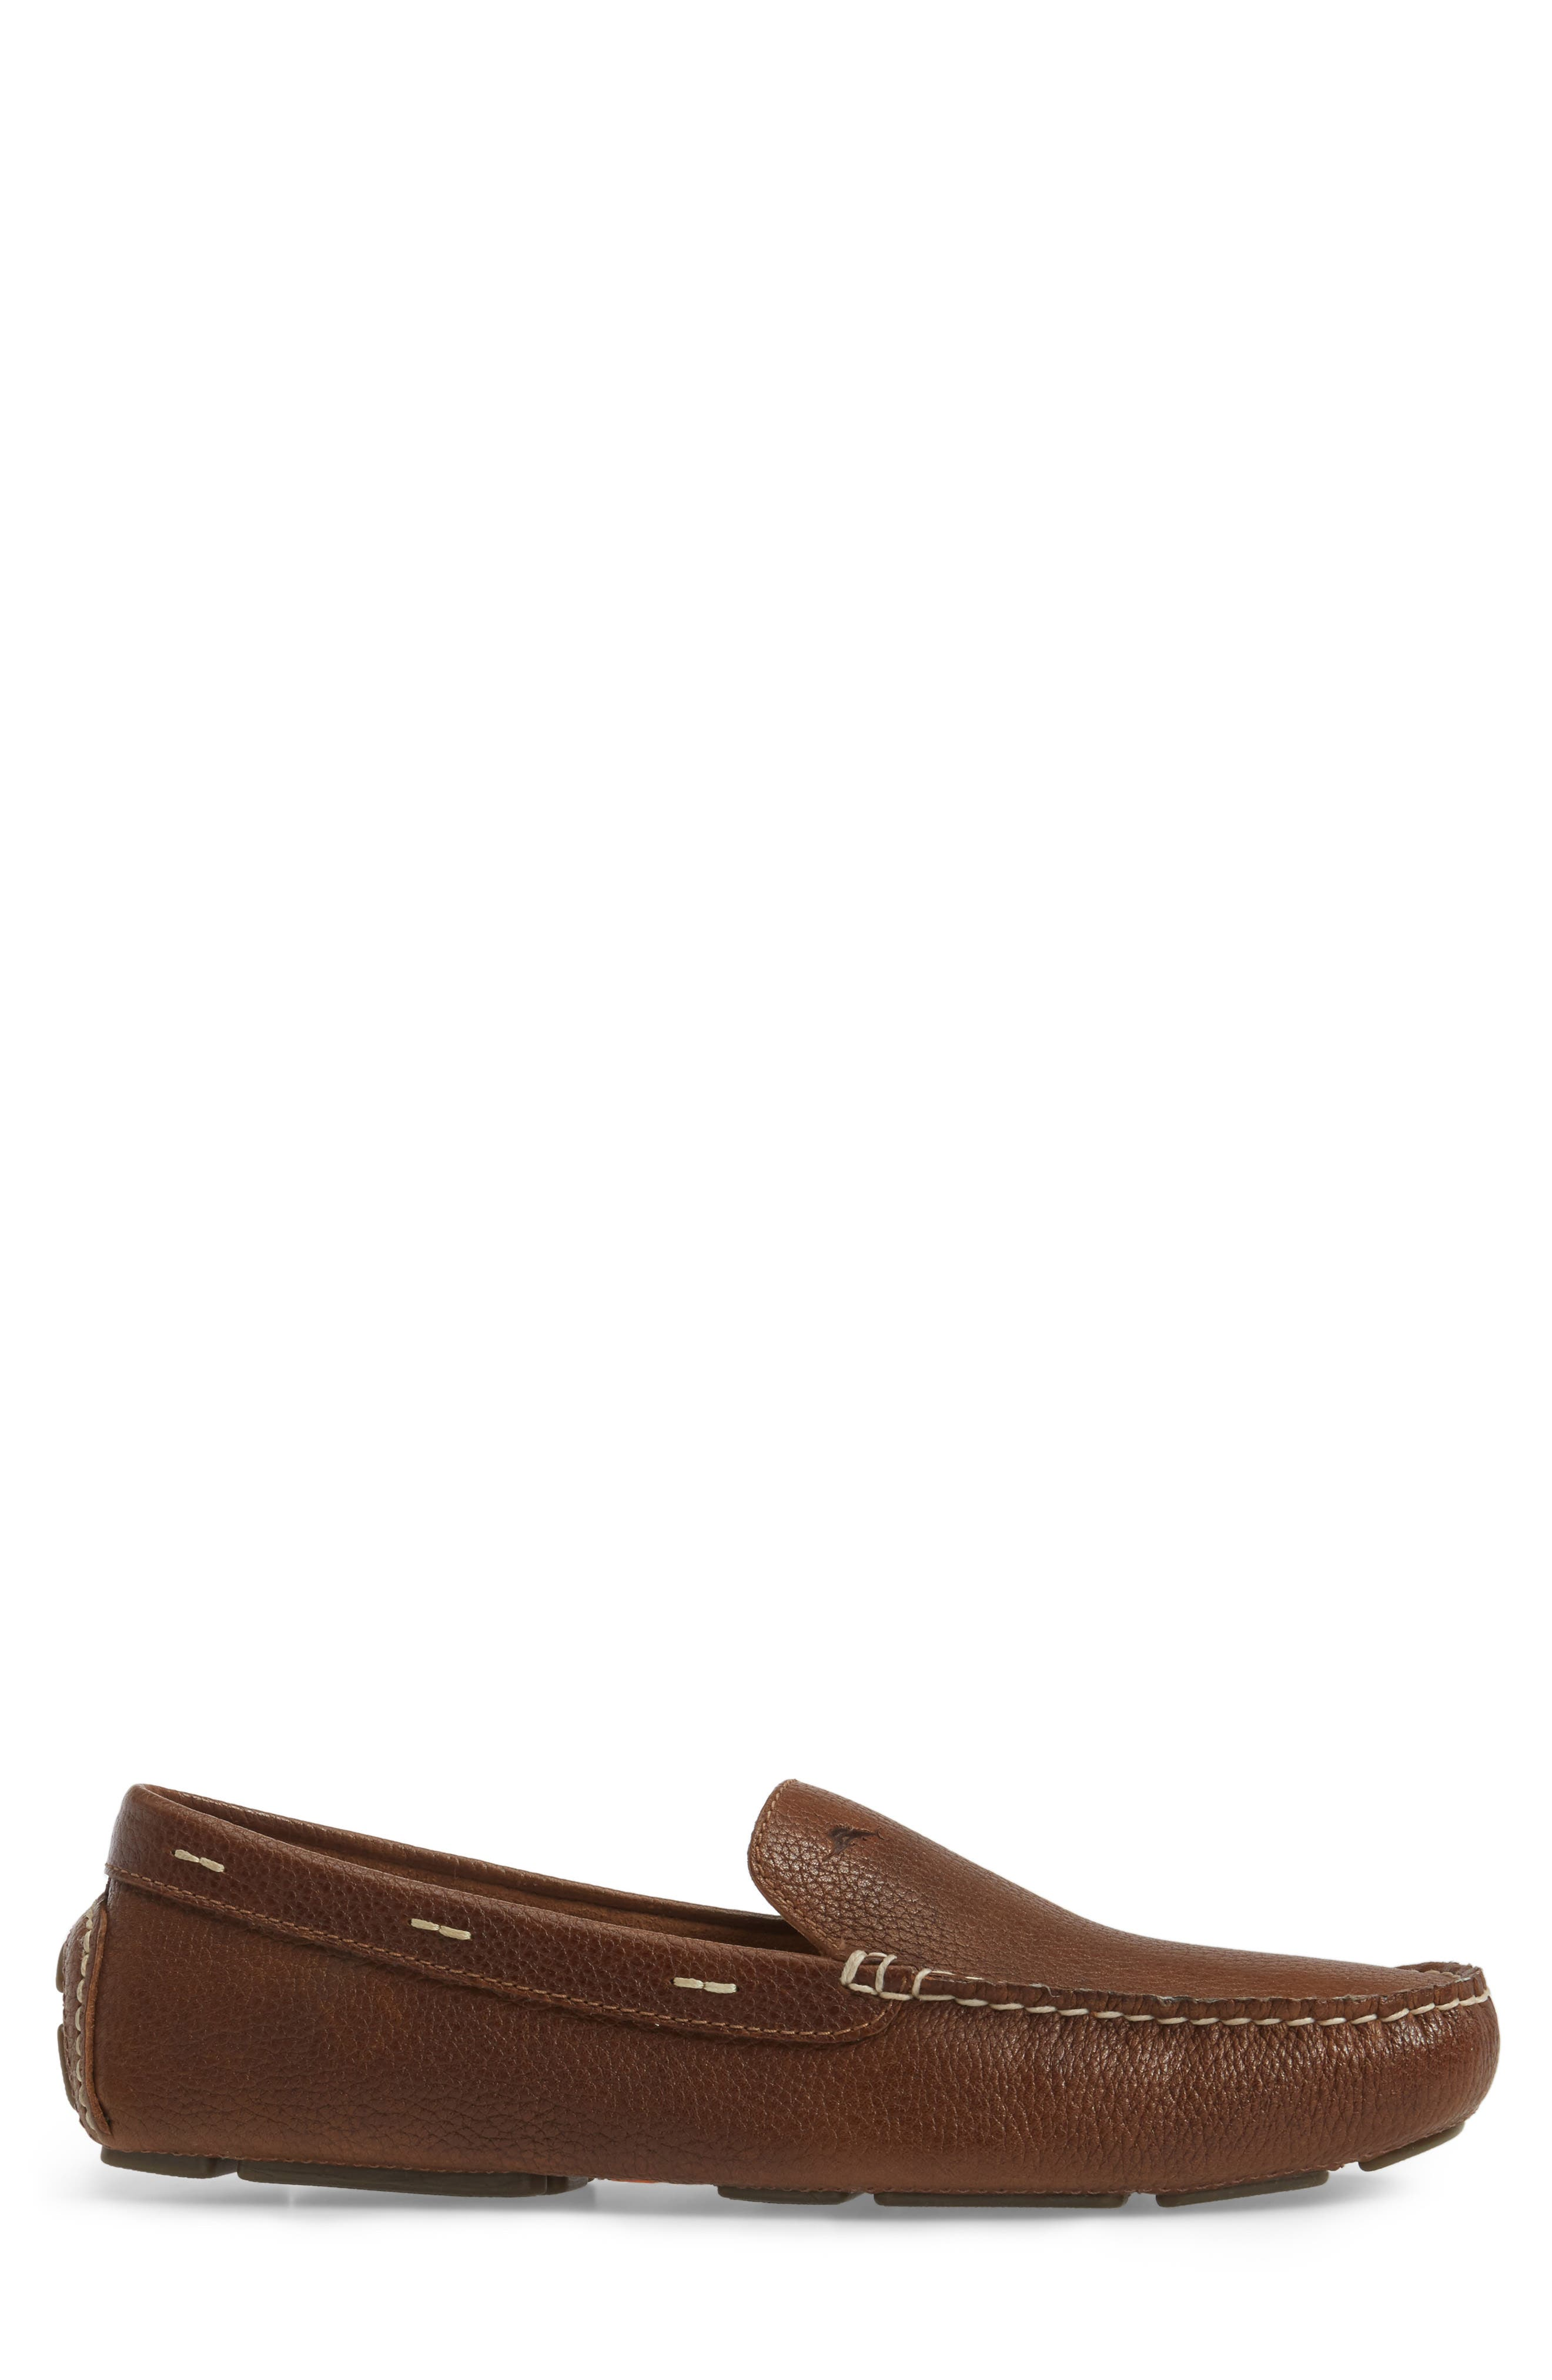 Pagota Driving Loafer,                             Alternate thumbnail 18, color,